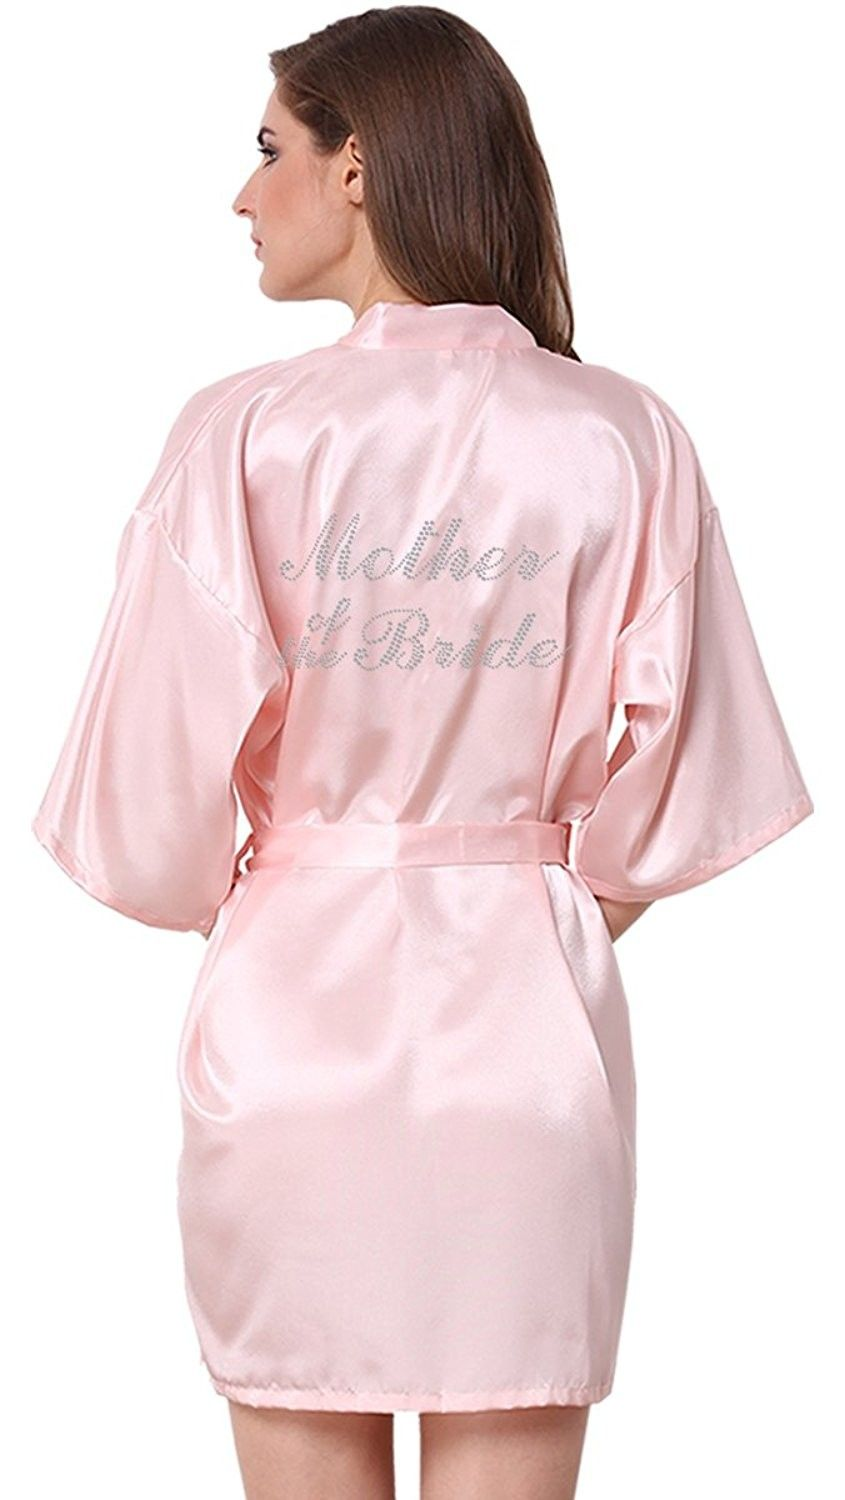 Wedding Party Satin Kimono Bride Bridesmaid Robes With Rhinestone ... 3393e3323